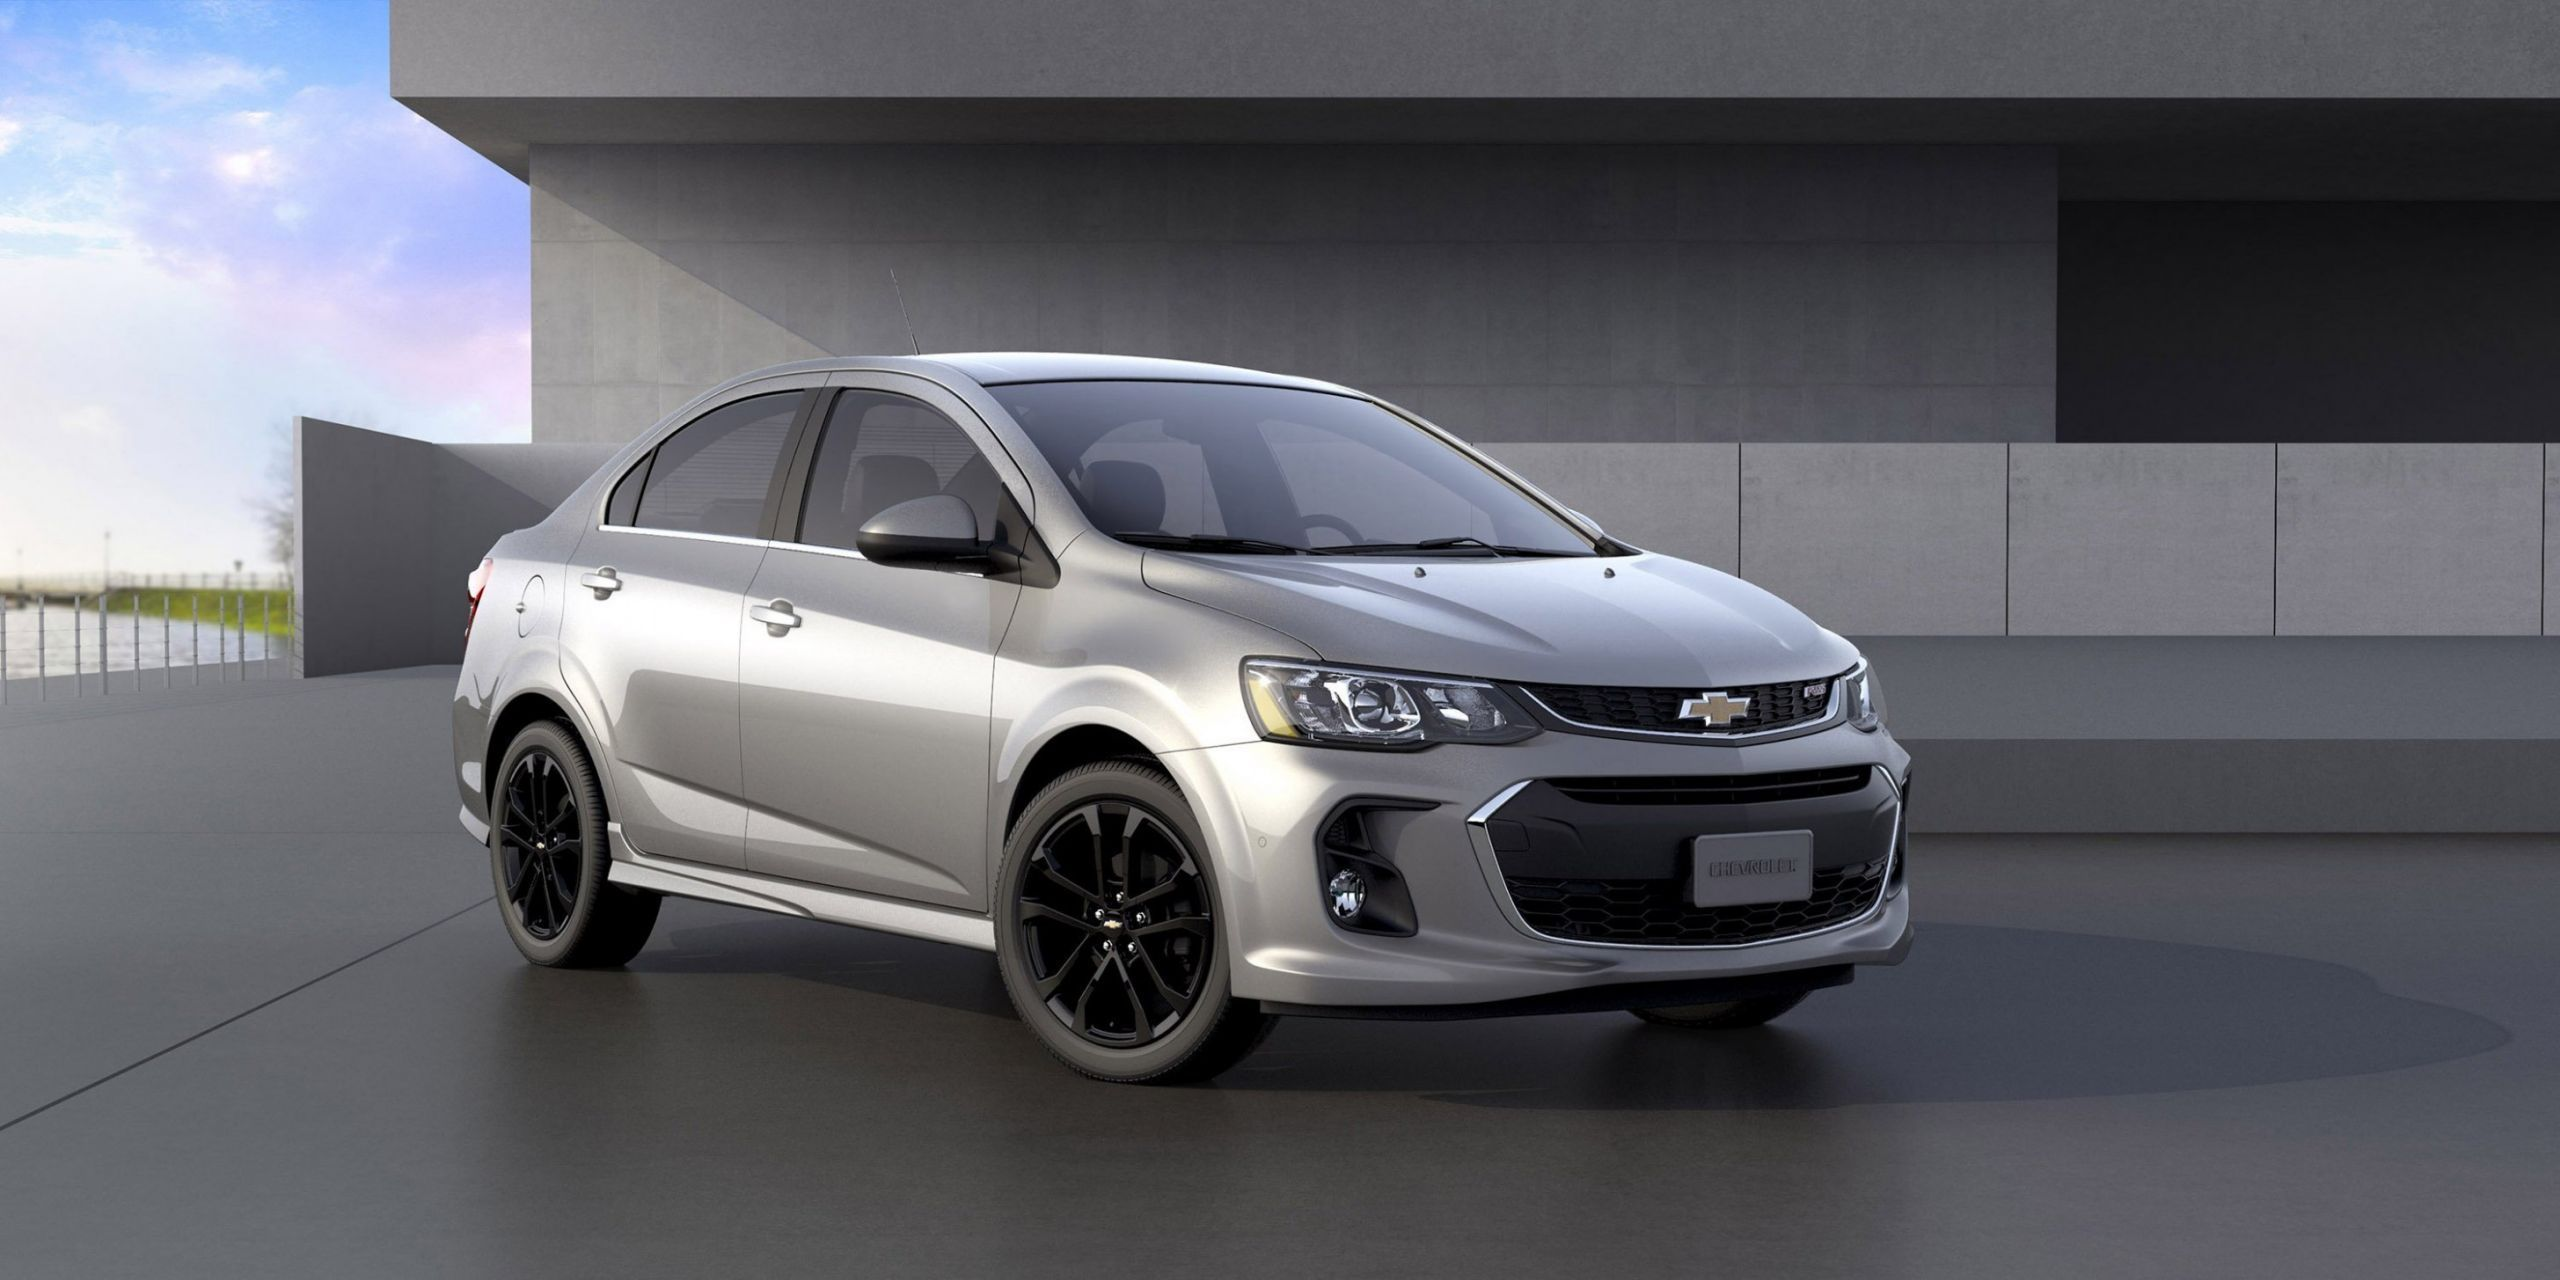 2021 Chevy Sonic Ss Ev Rs Price, Design and Review